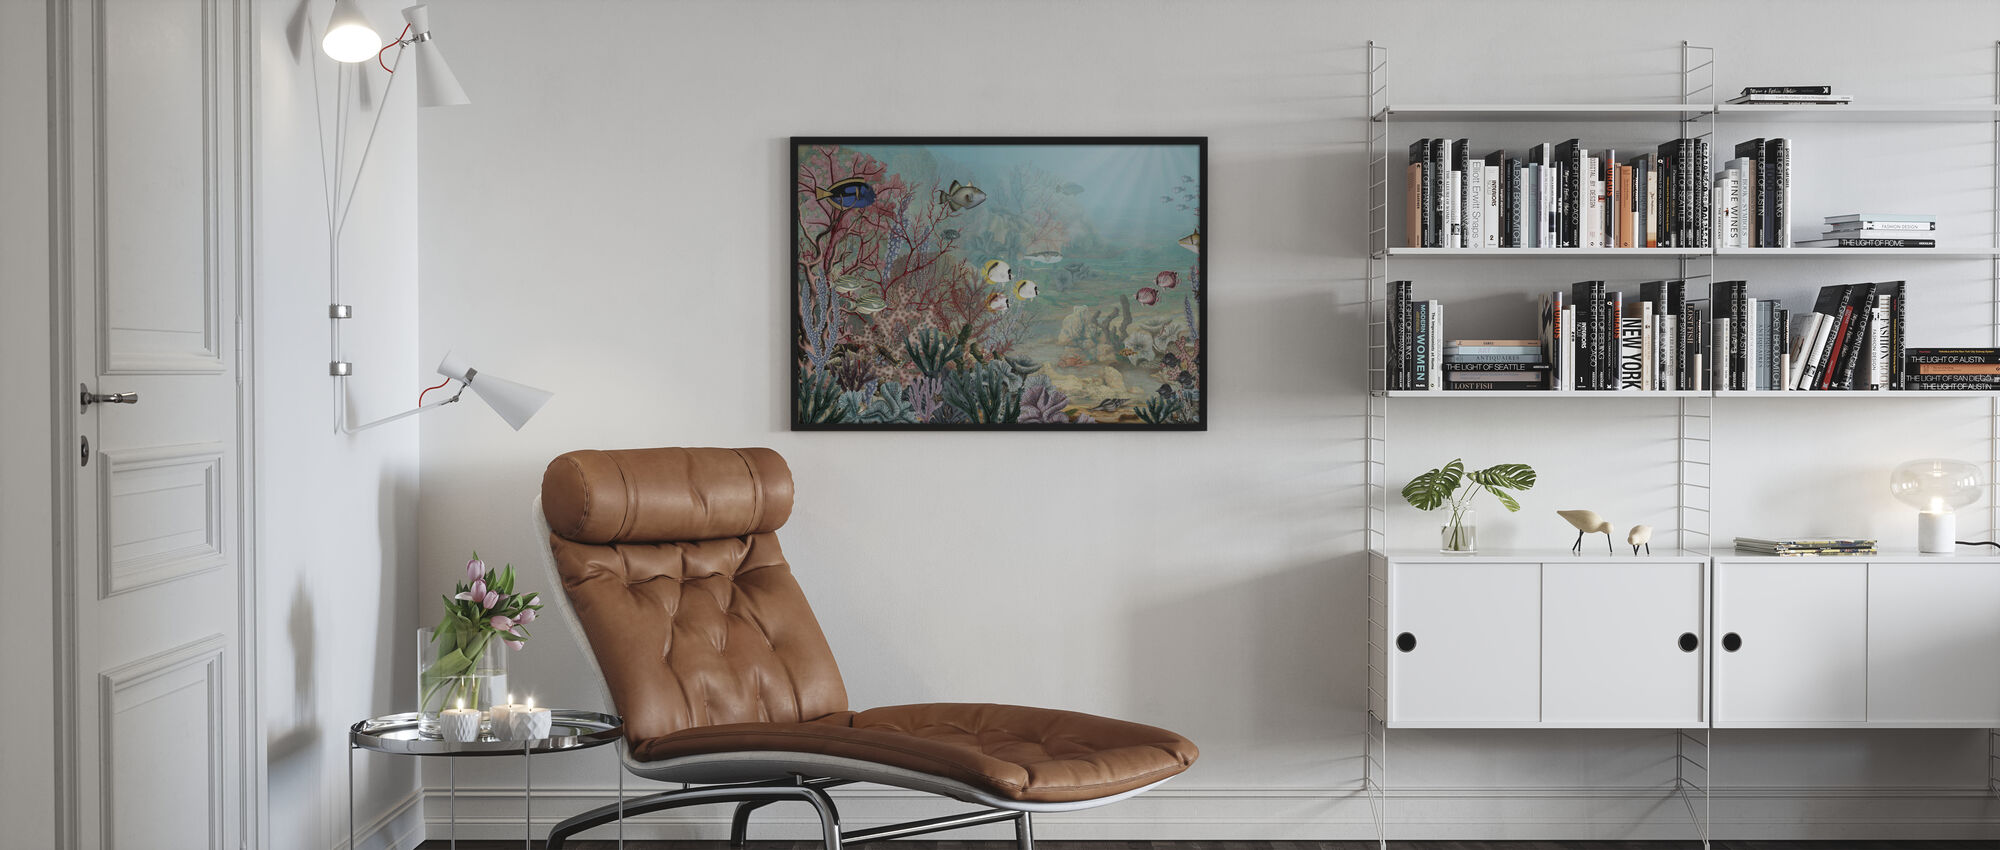 Coral Creatures - Poster - Living Room